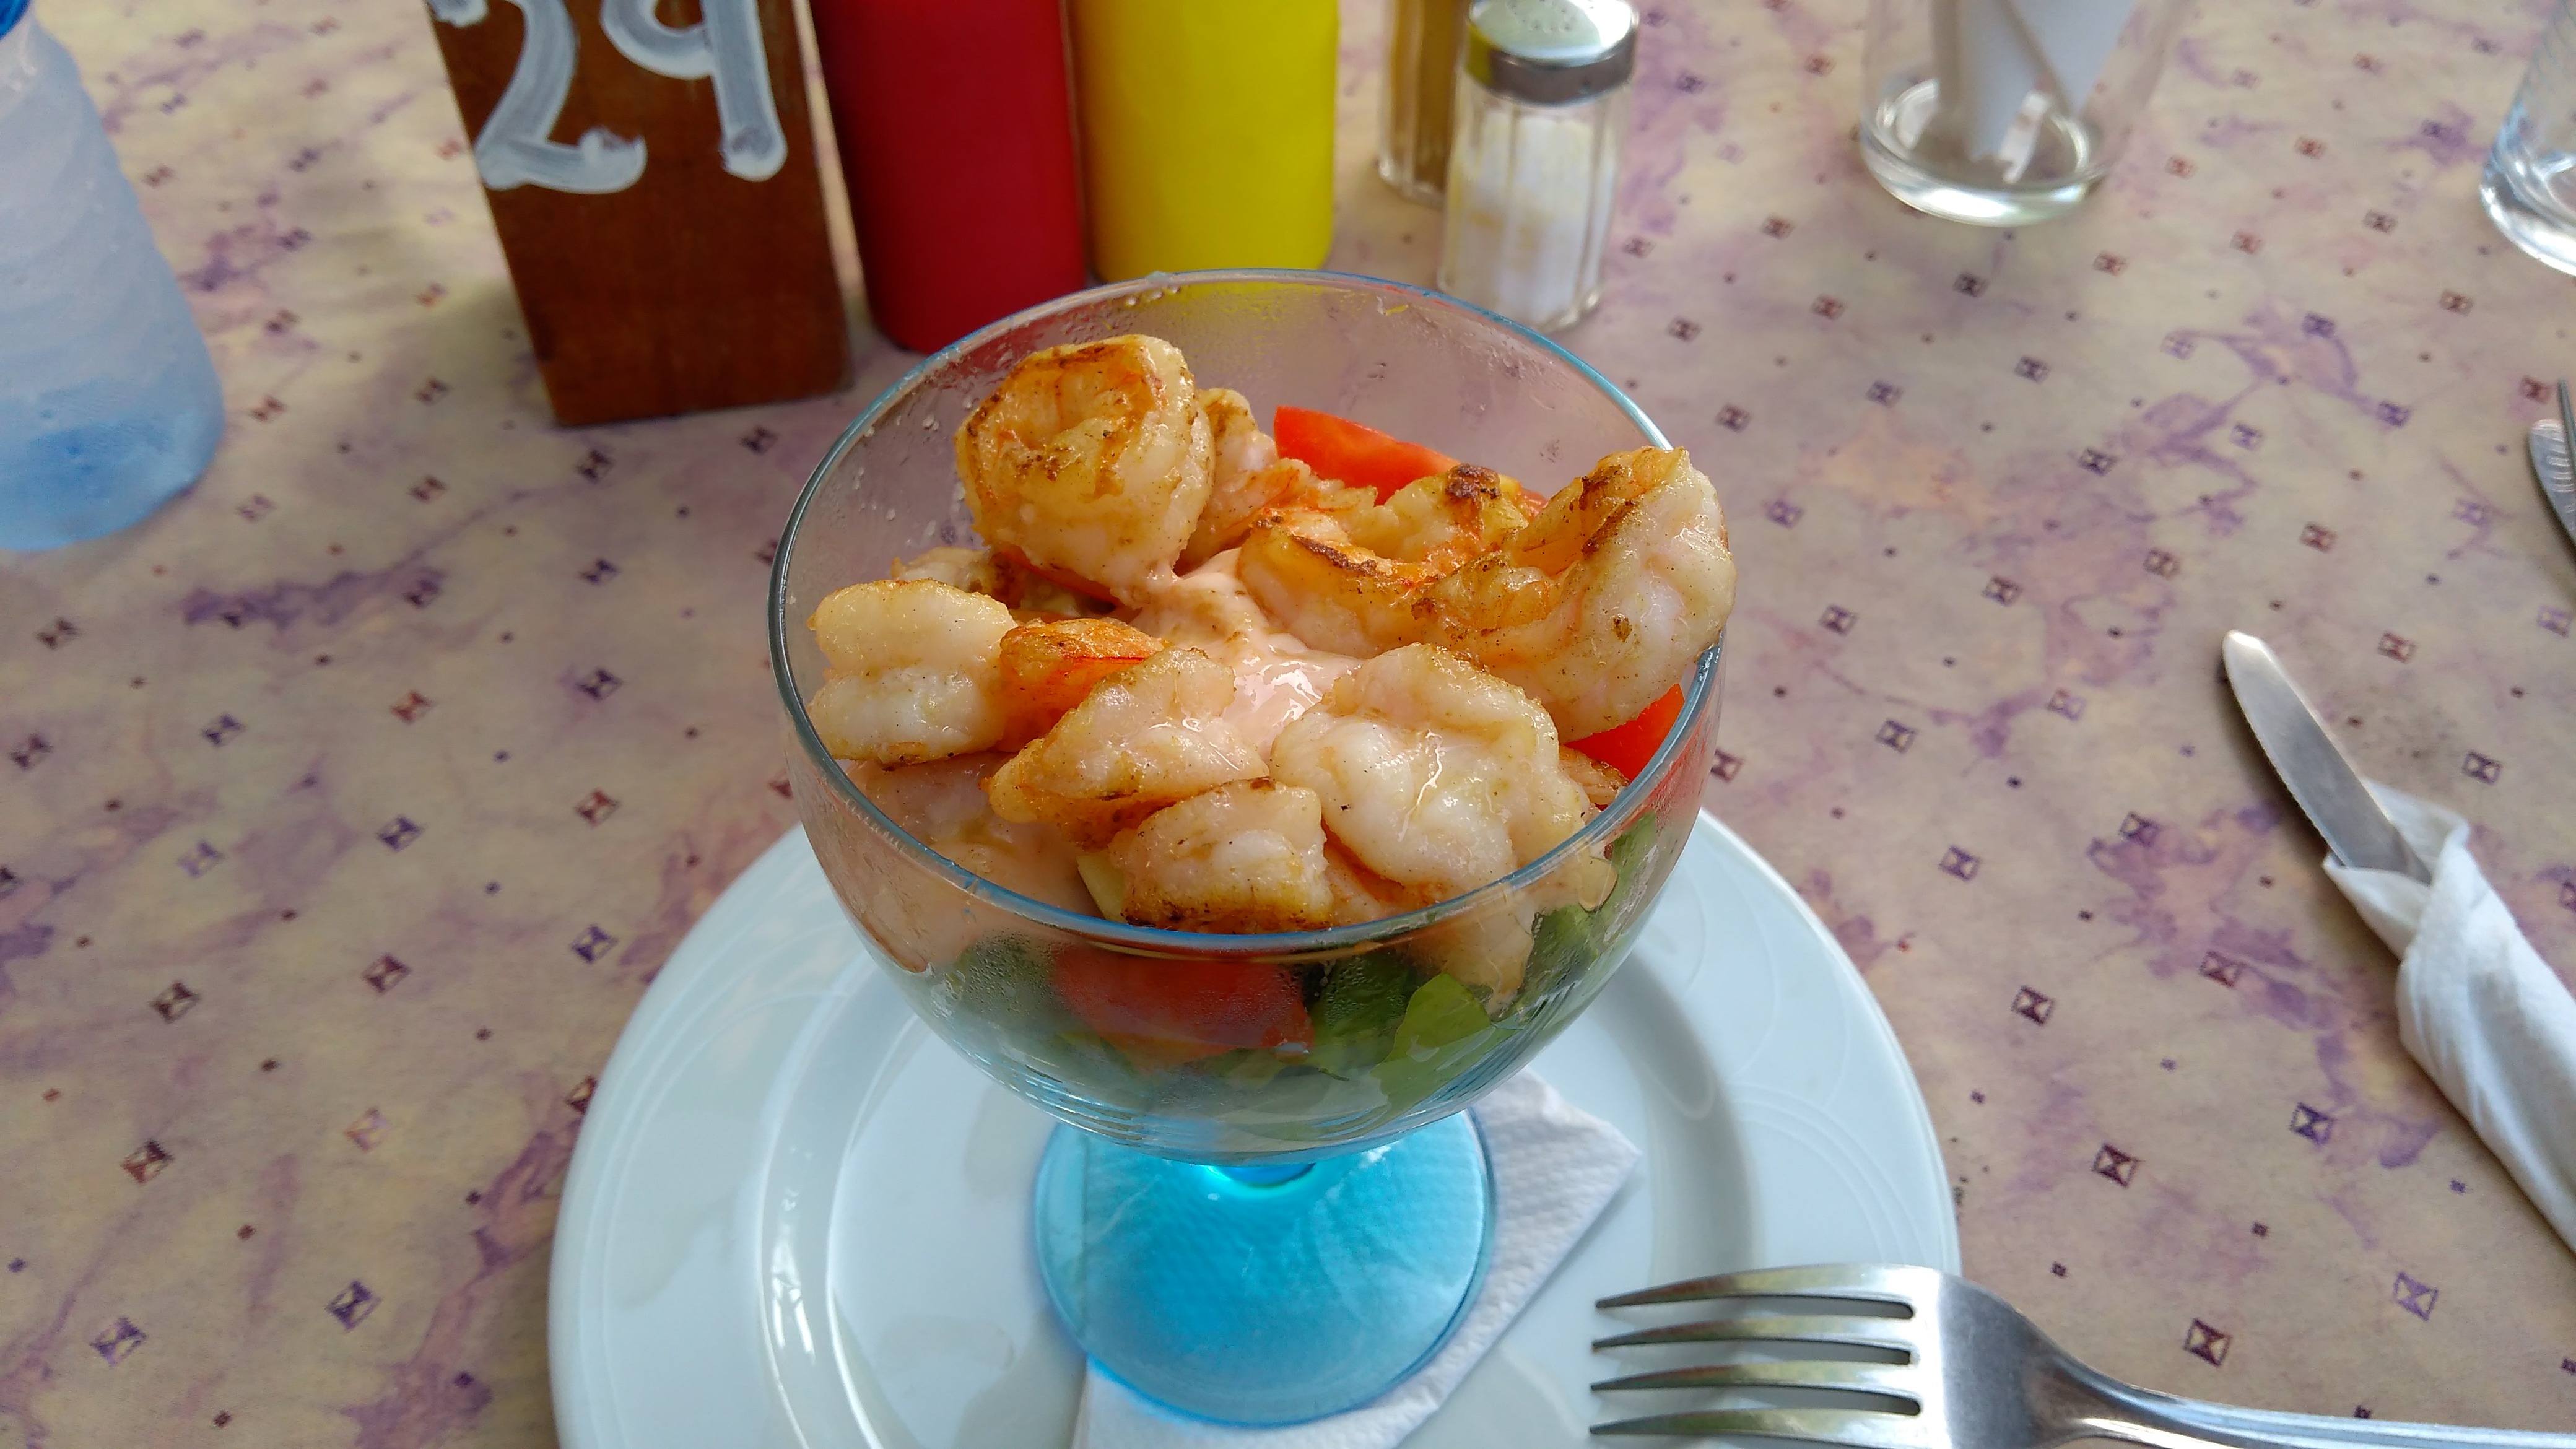 http://foodloader.net/blub_2017-03-24_Shrimps_Cocktail.jpg